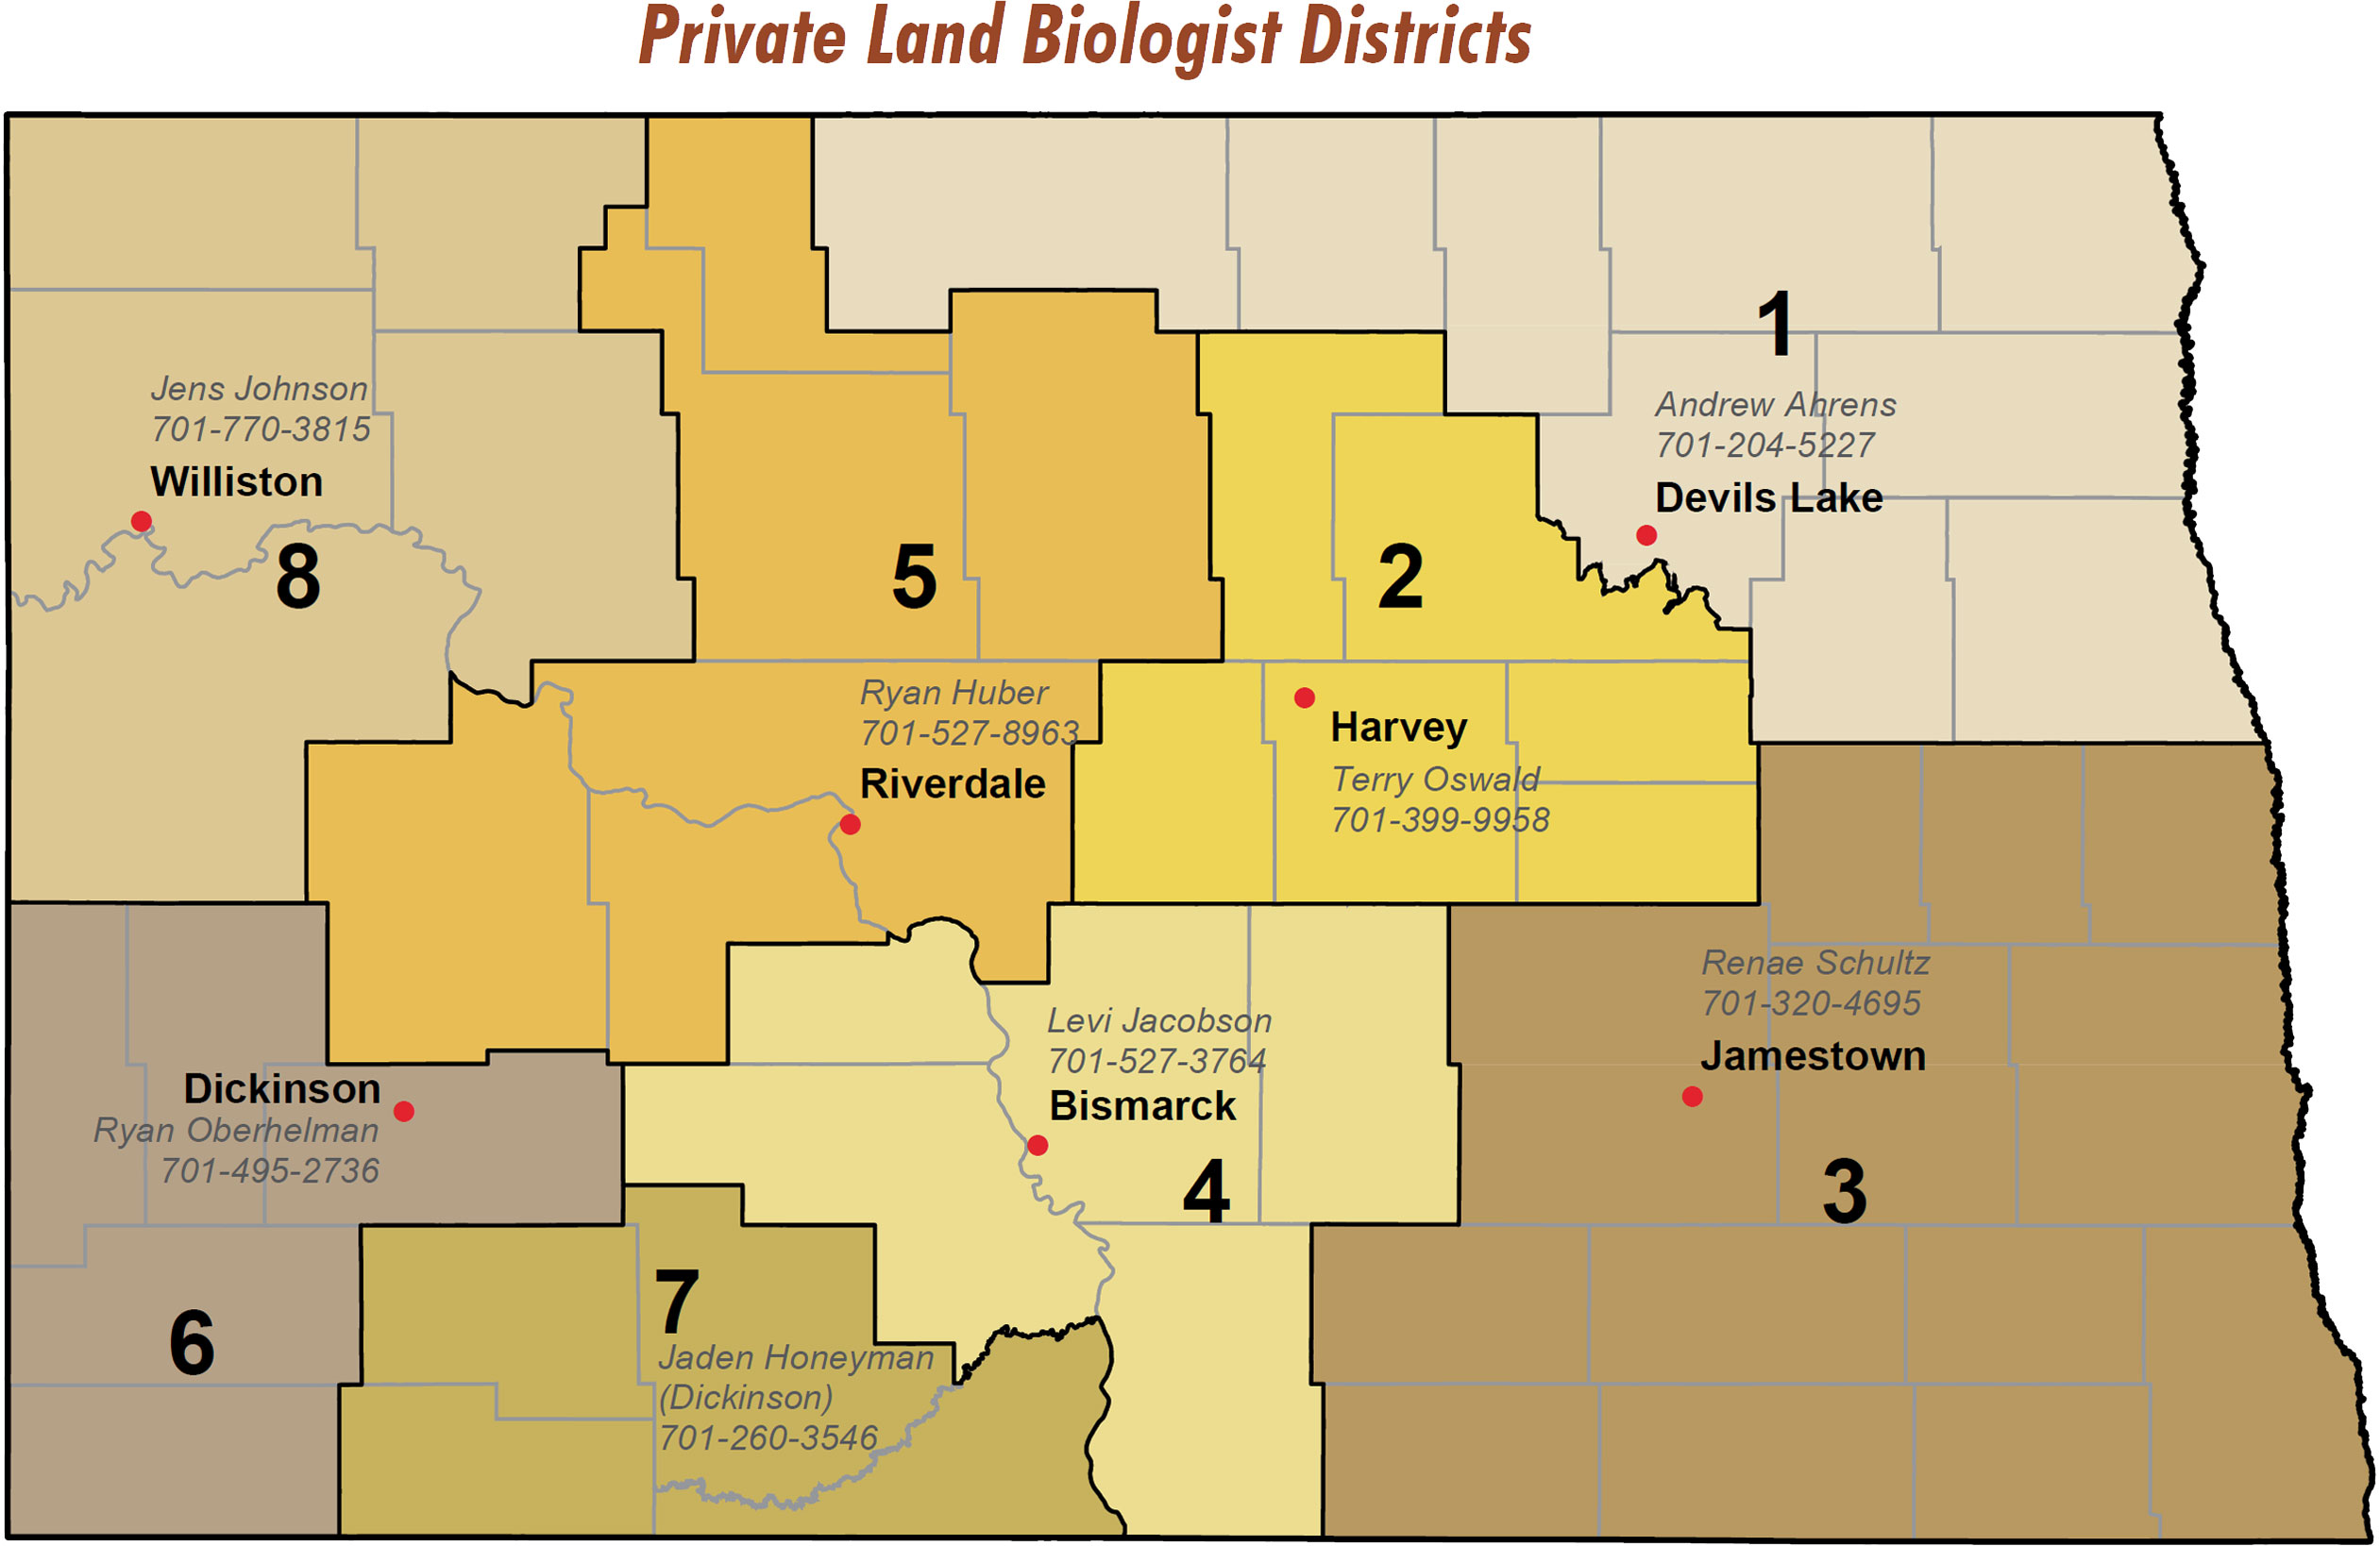 Private Land Biologist Districts